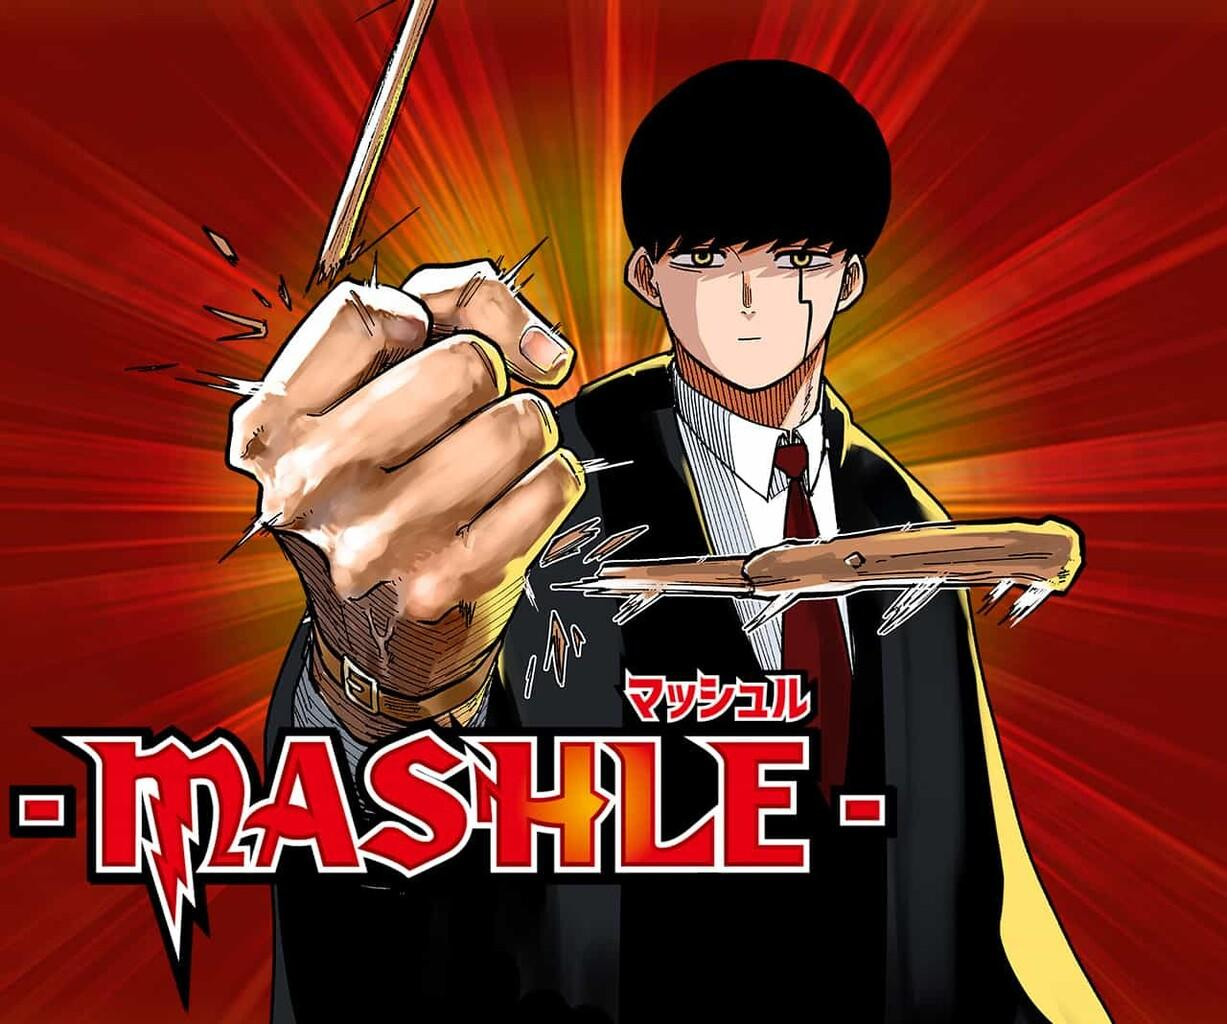 MASHLE: Magic and Muscles